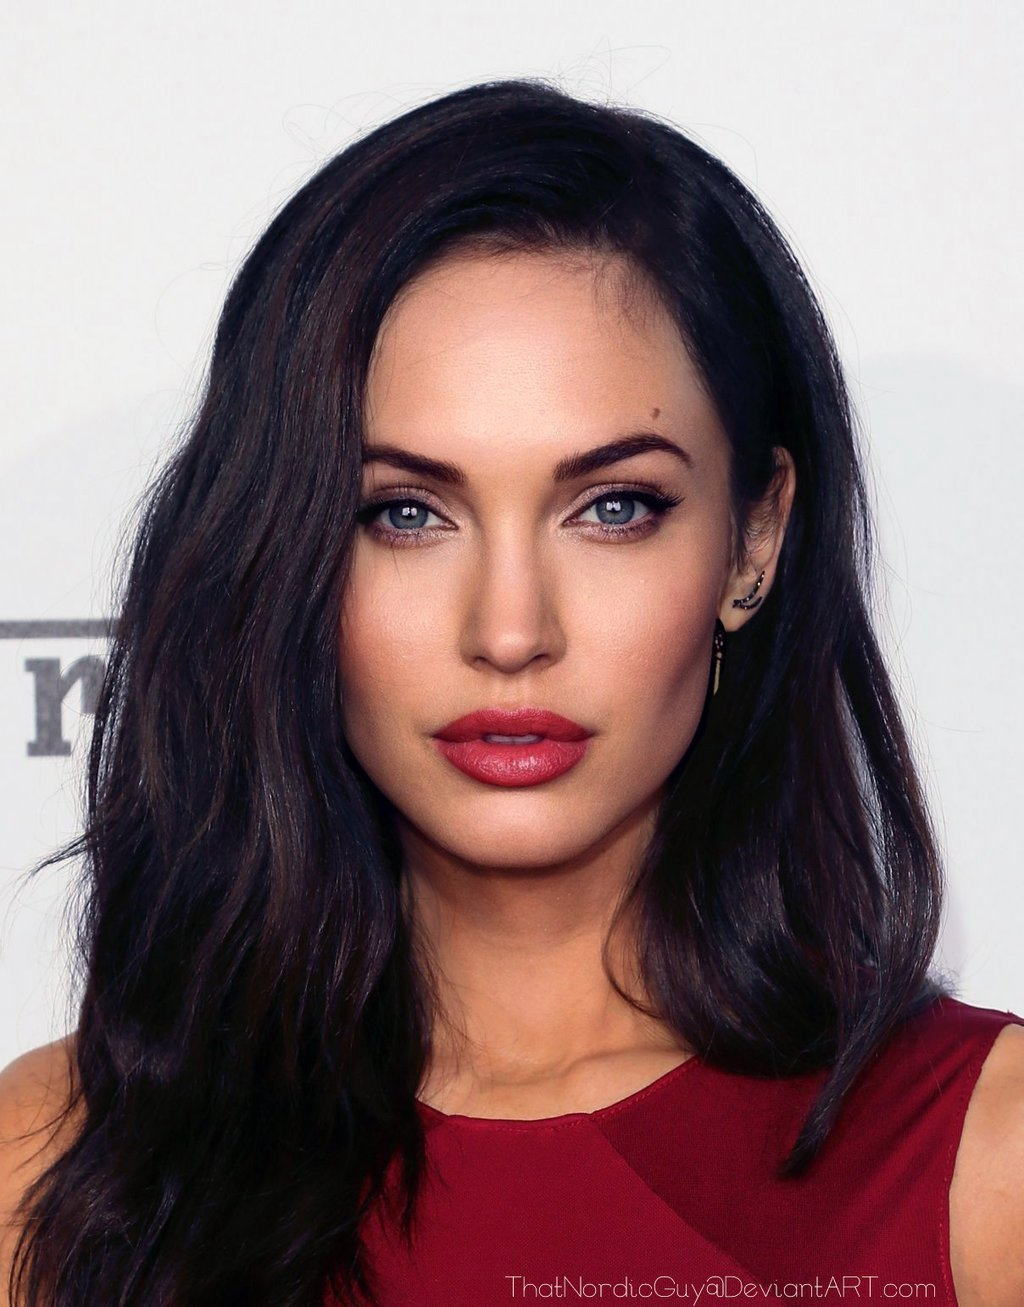 his-portrait-of-megan-fox-and-angelina-jolie-is-stunning